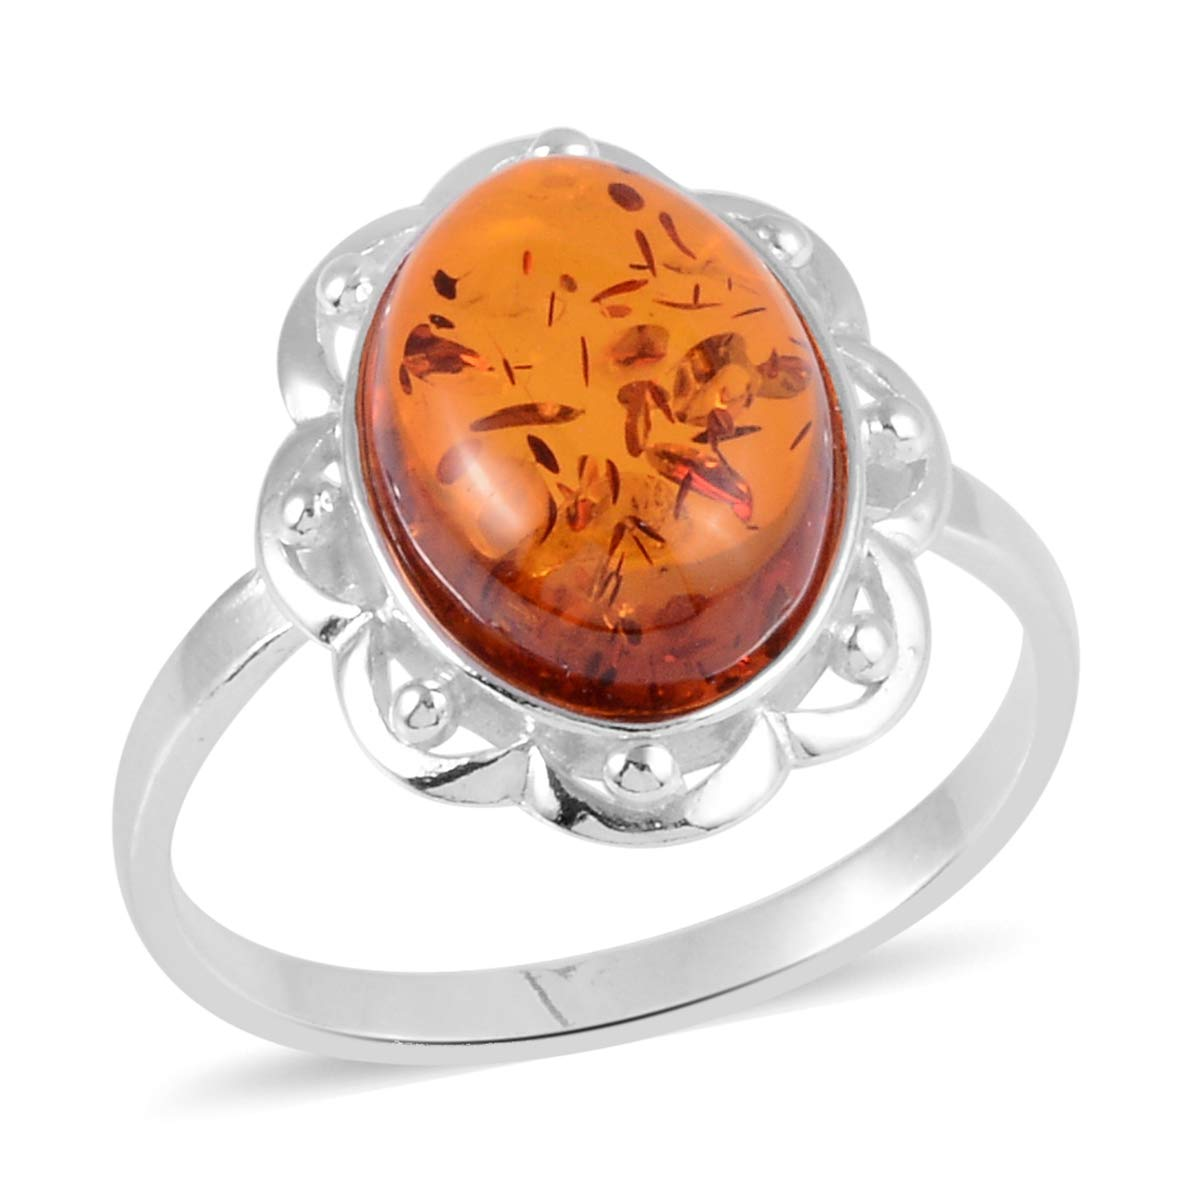 Amber Flower Ring 925 Sterling Silver Boho Handmade Jewelry for Women Size 9